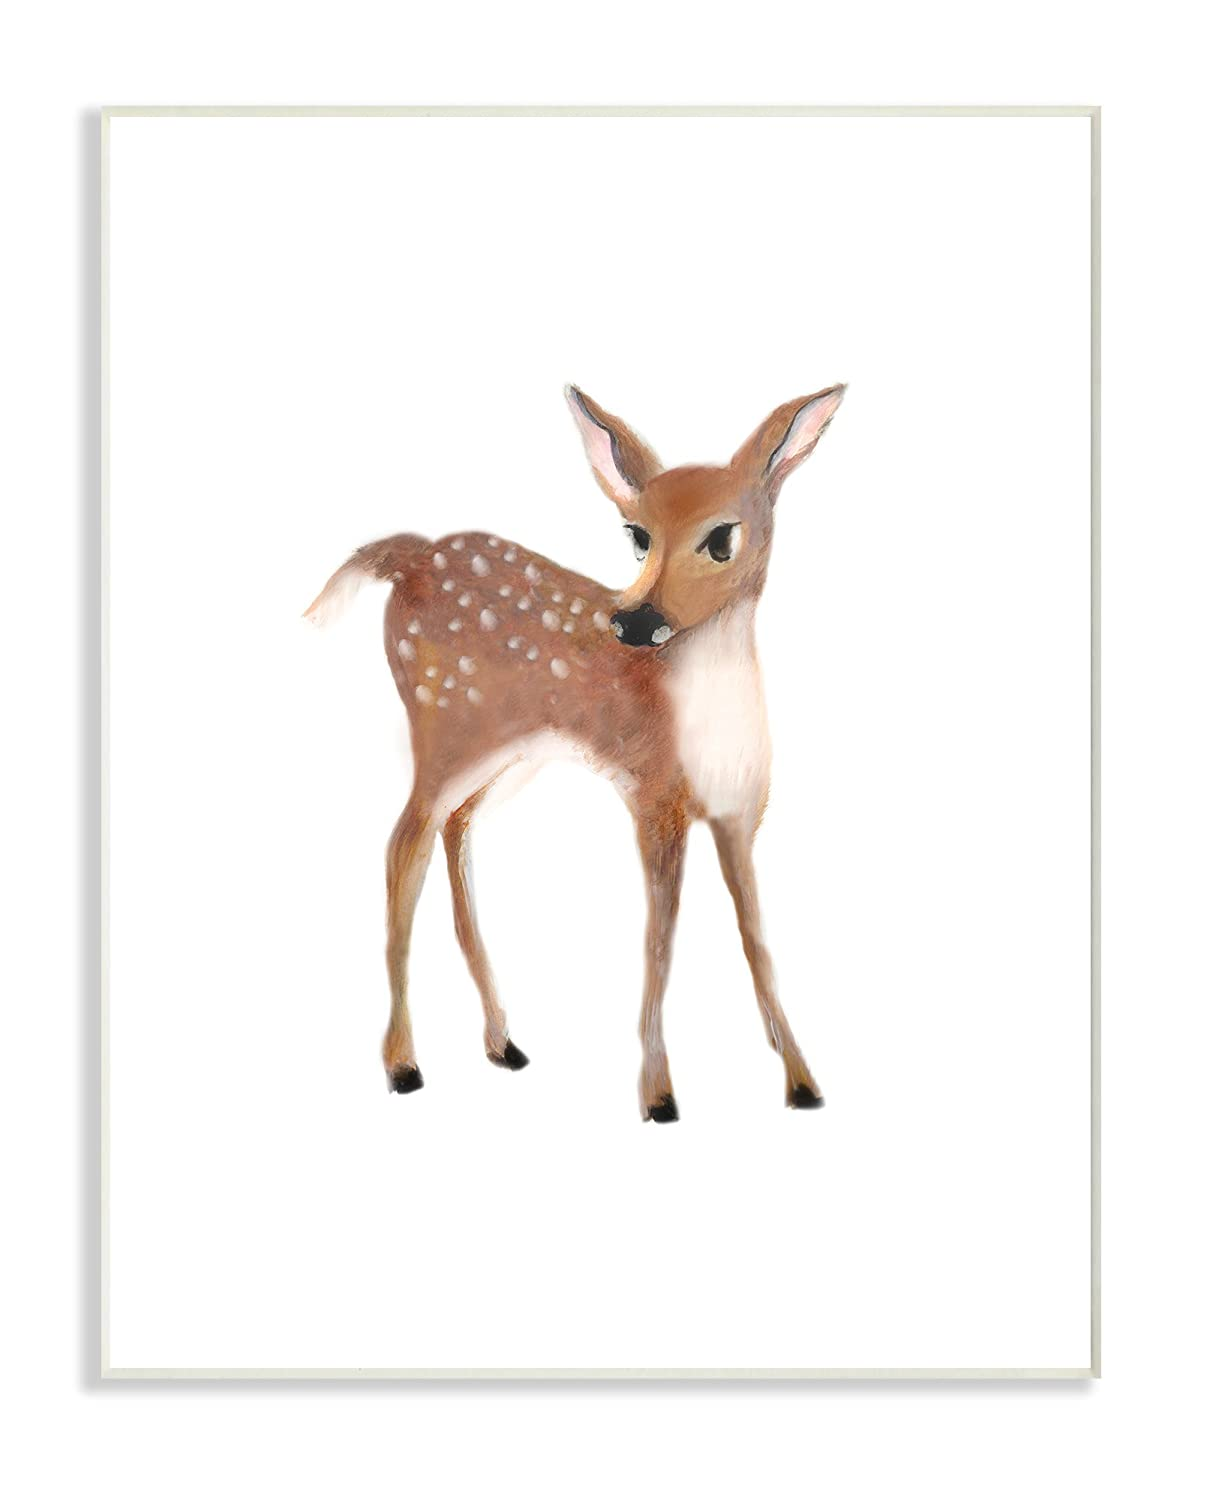 10 x 0.5 x 15 Stupell Industries Baby Deer Illustration Wall Plaque Art Proudly Made in USA